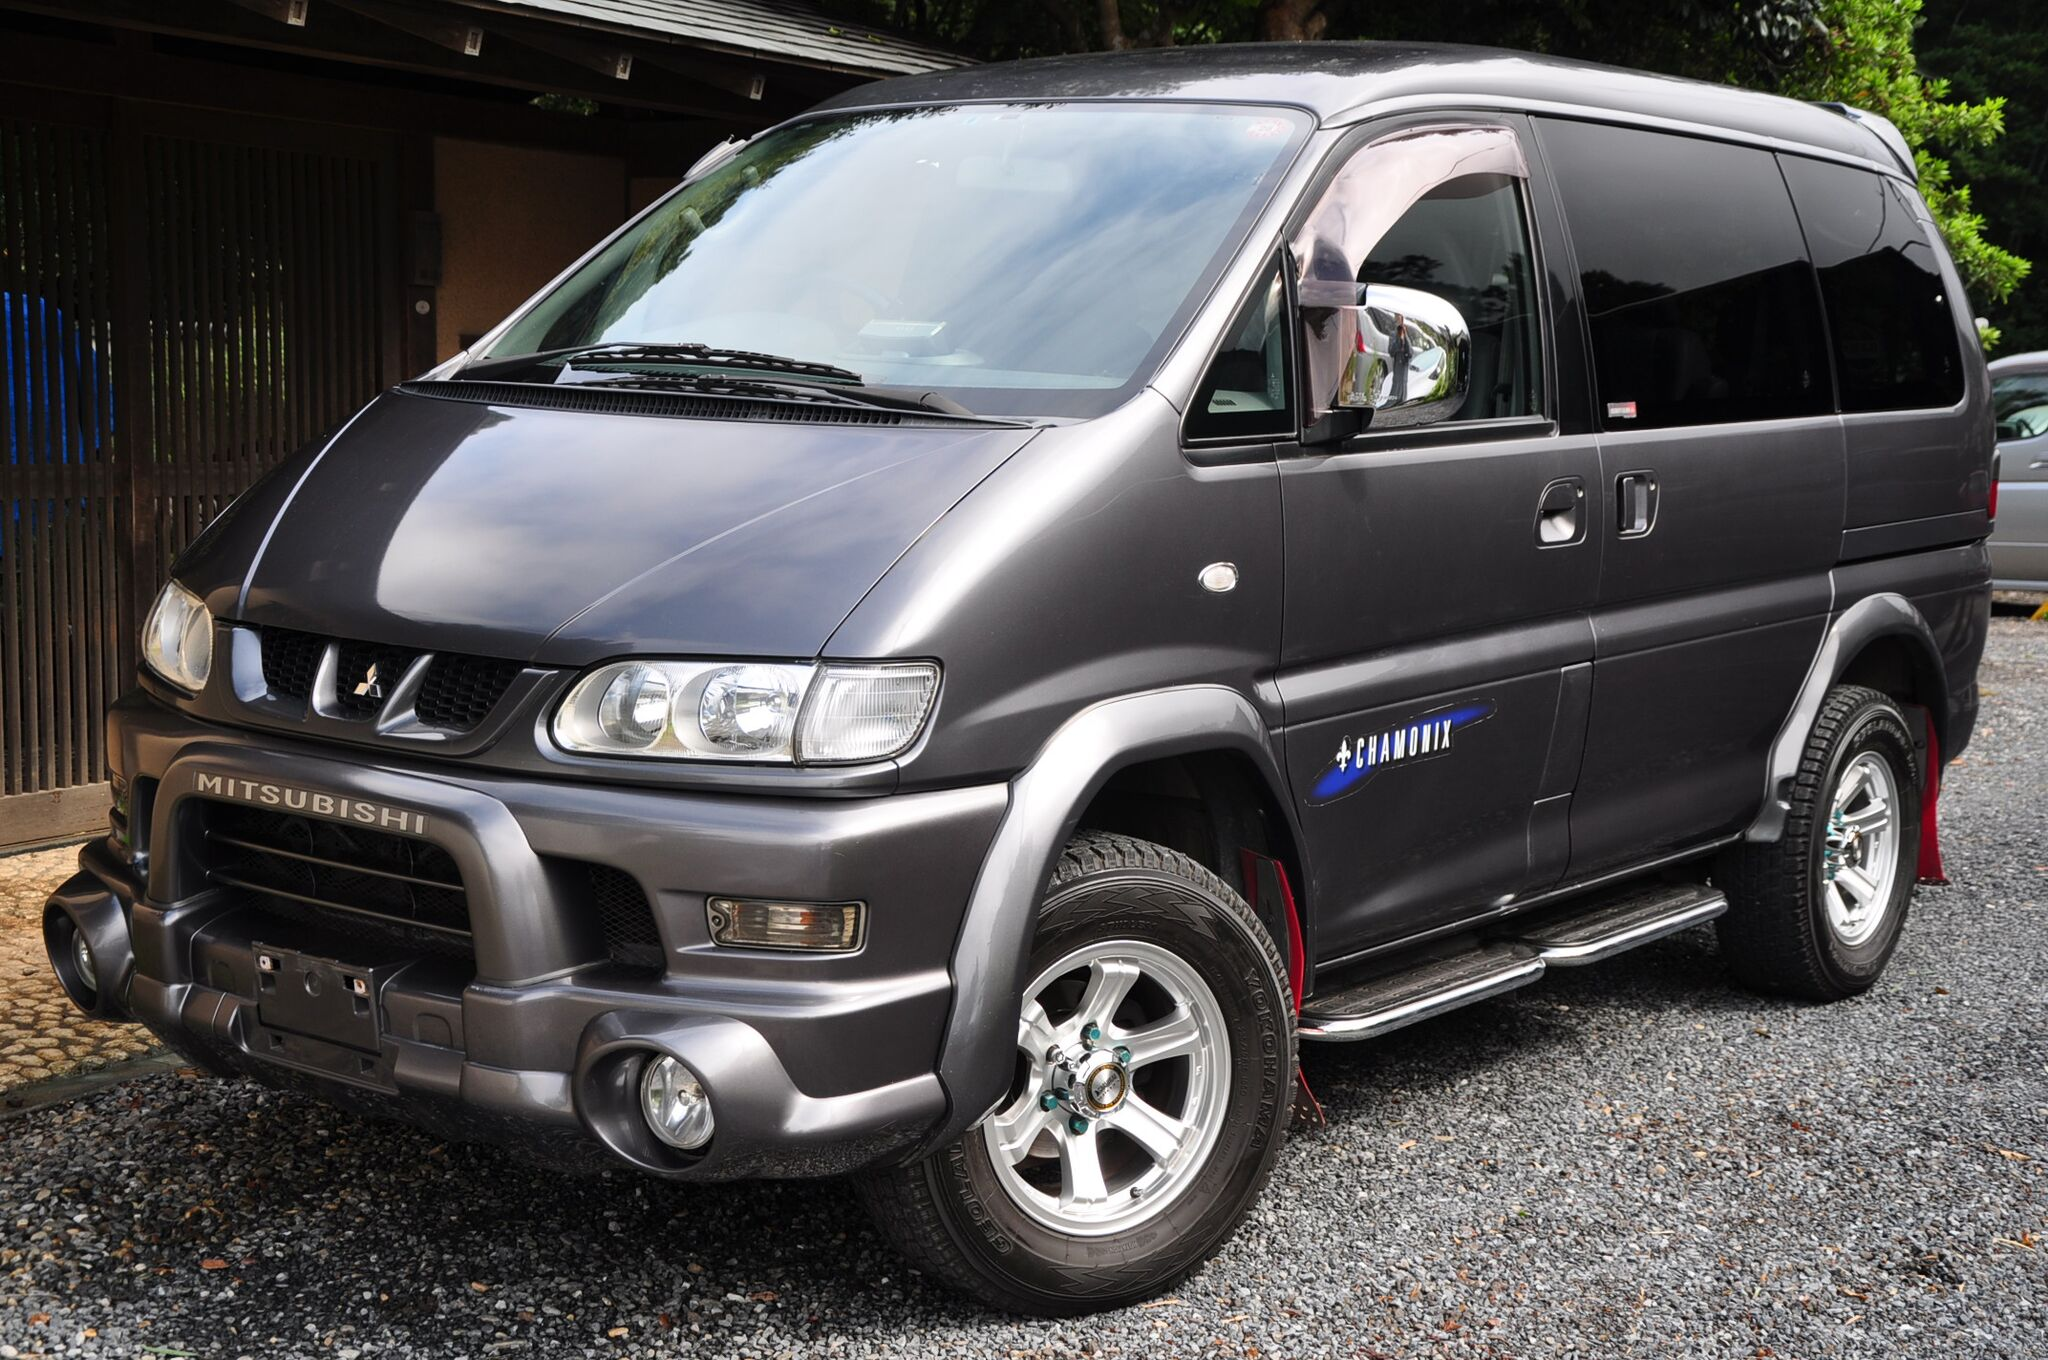 Mitsubishi Delica for sale fully UK registered and supplied direct UK